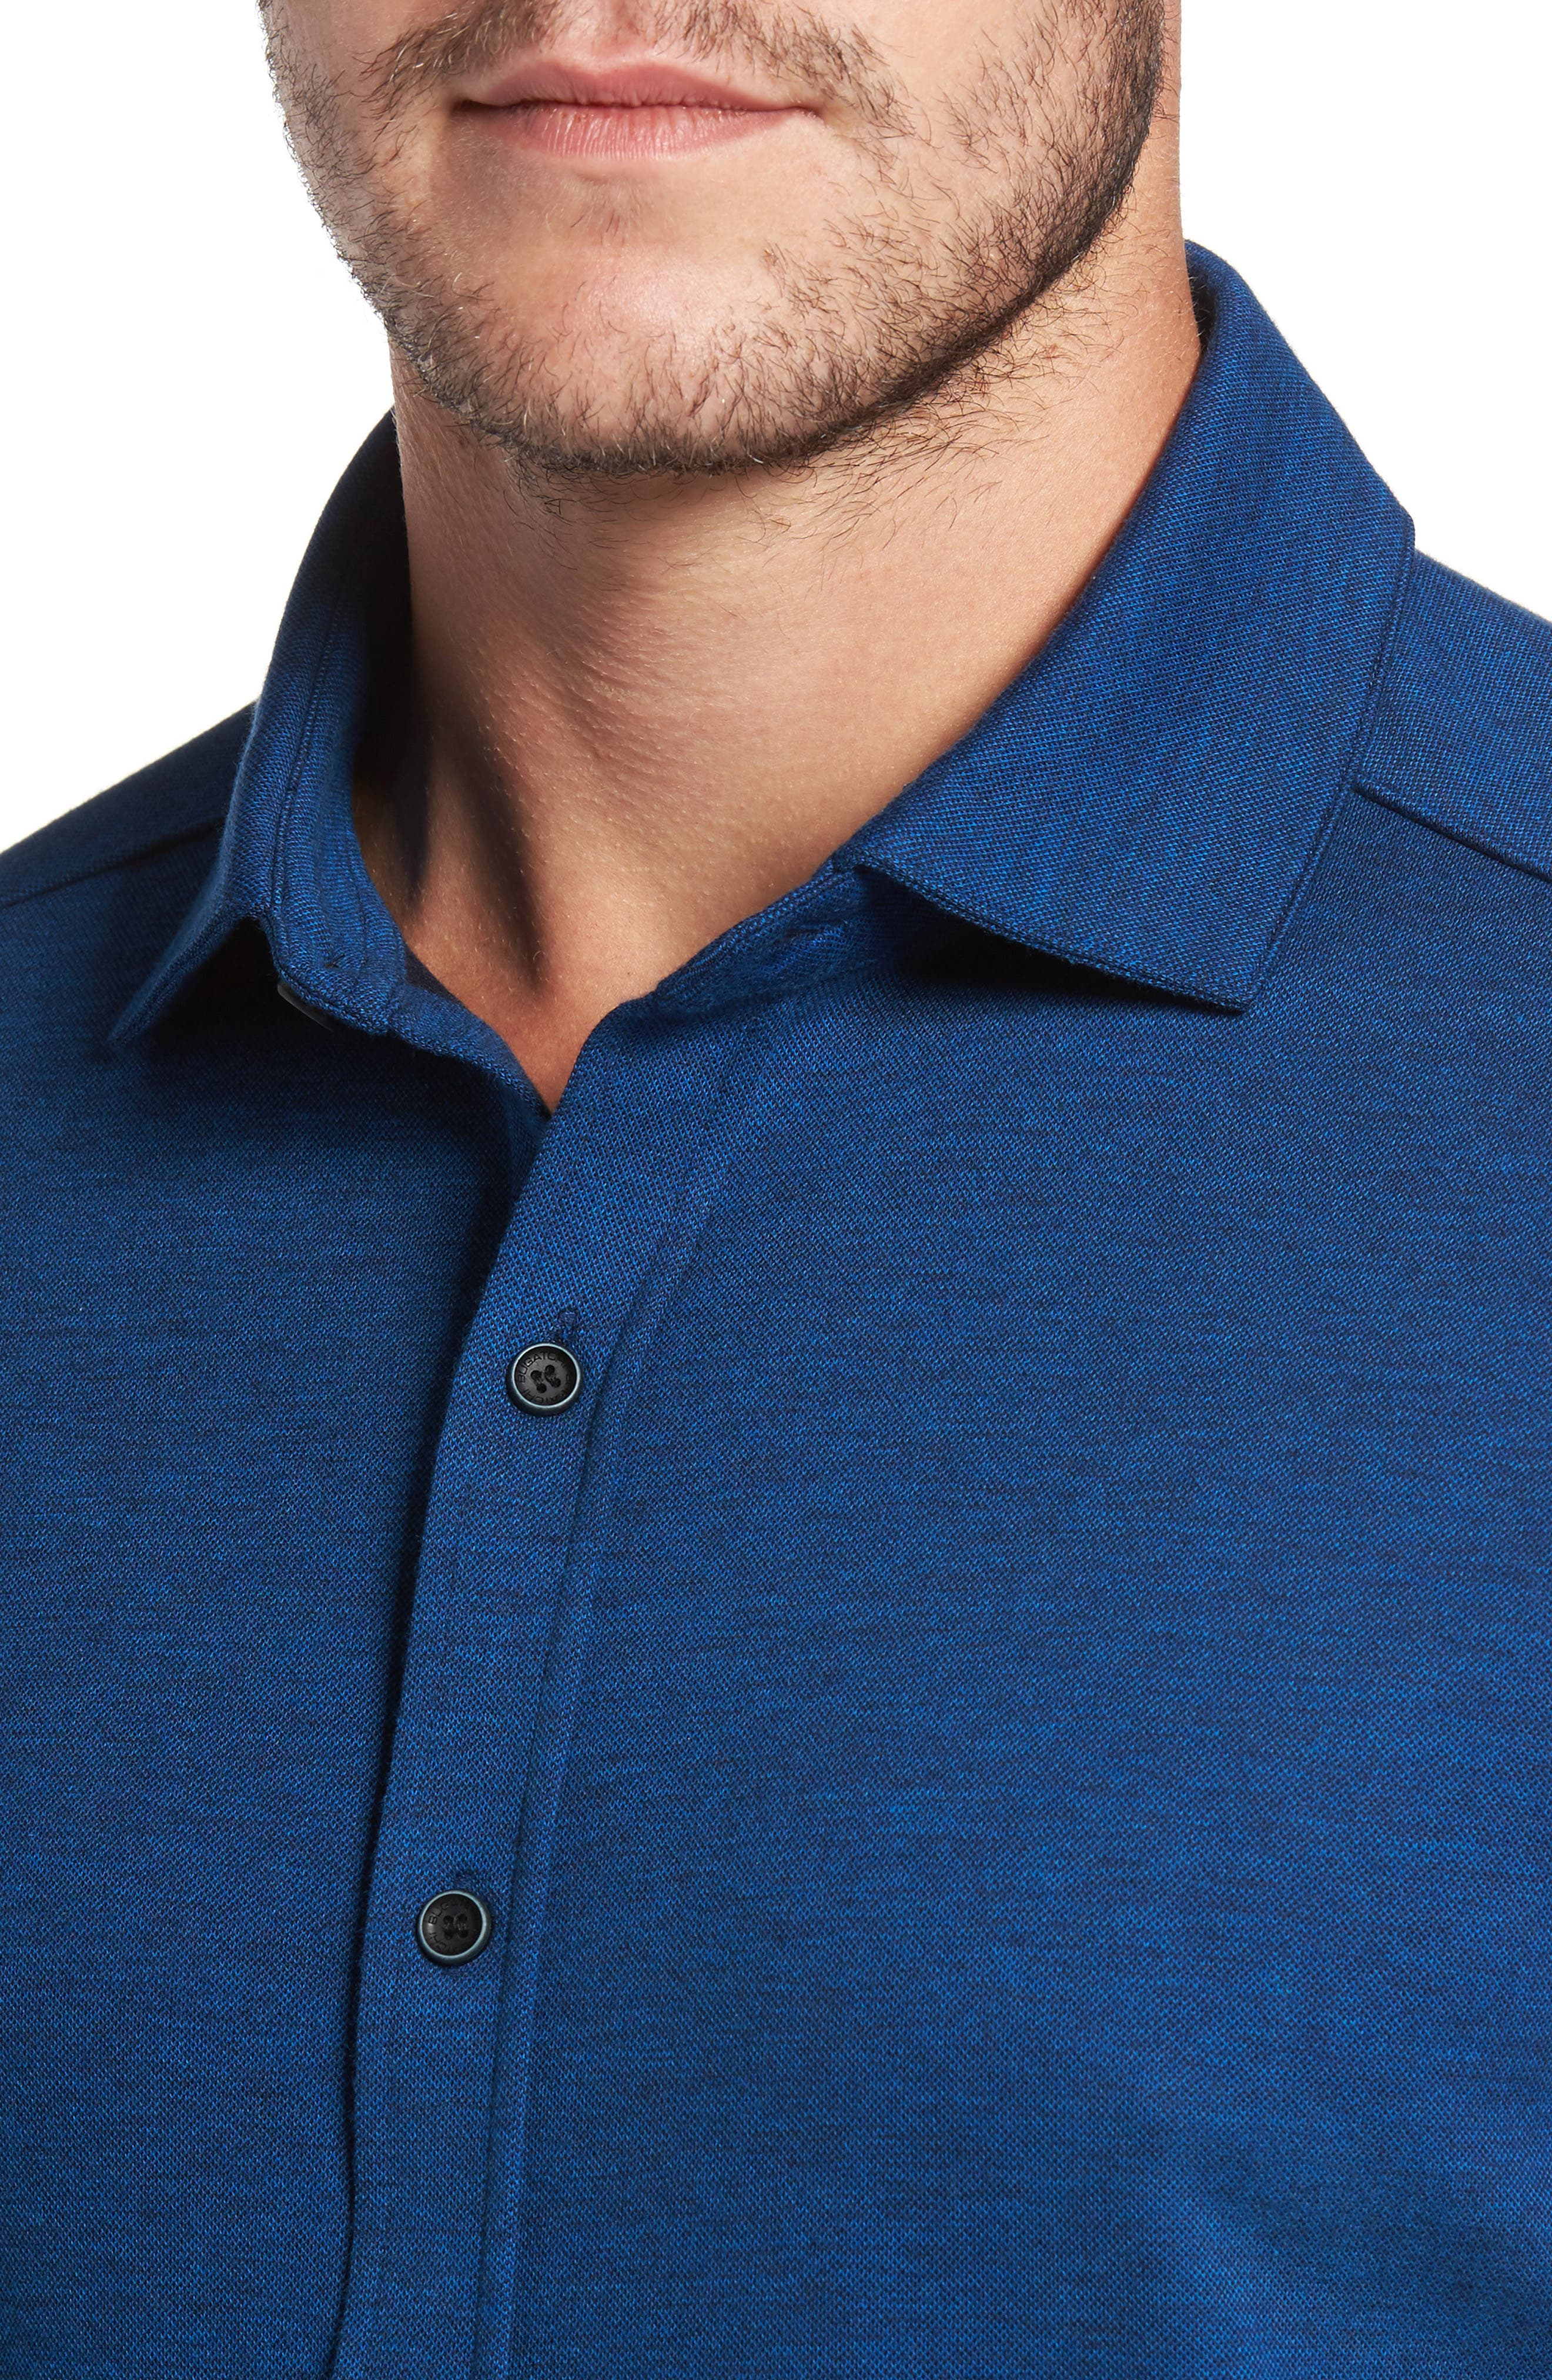 Classic Fit Heathered Knit Sport Shirt,                             Alternate thumbnail 4, color,                             Night Blue